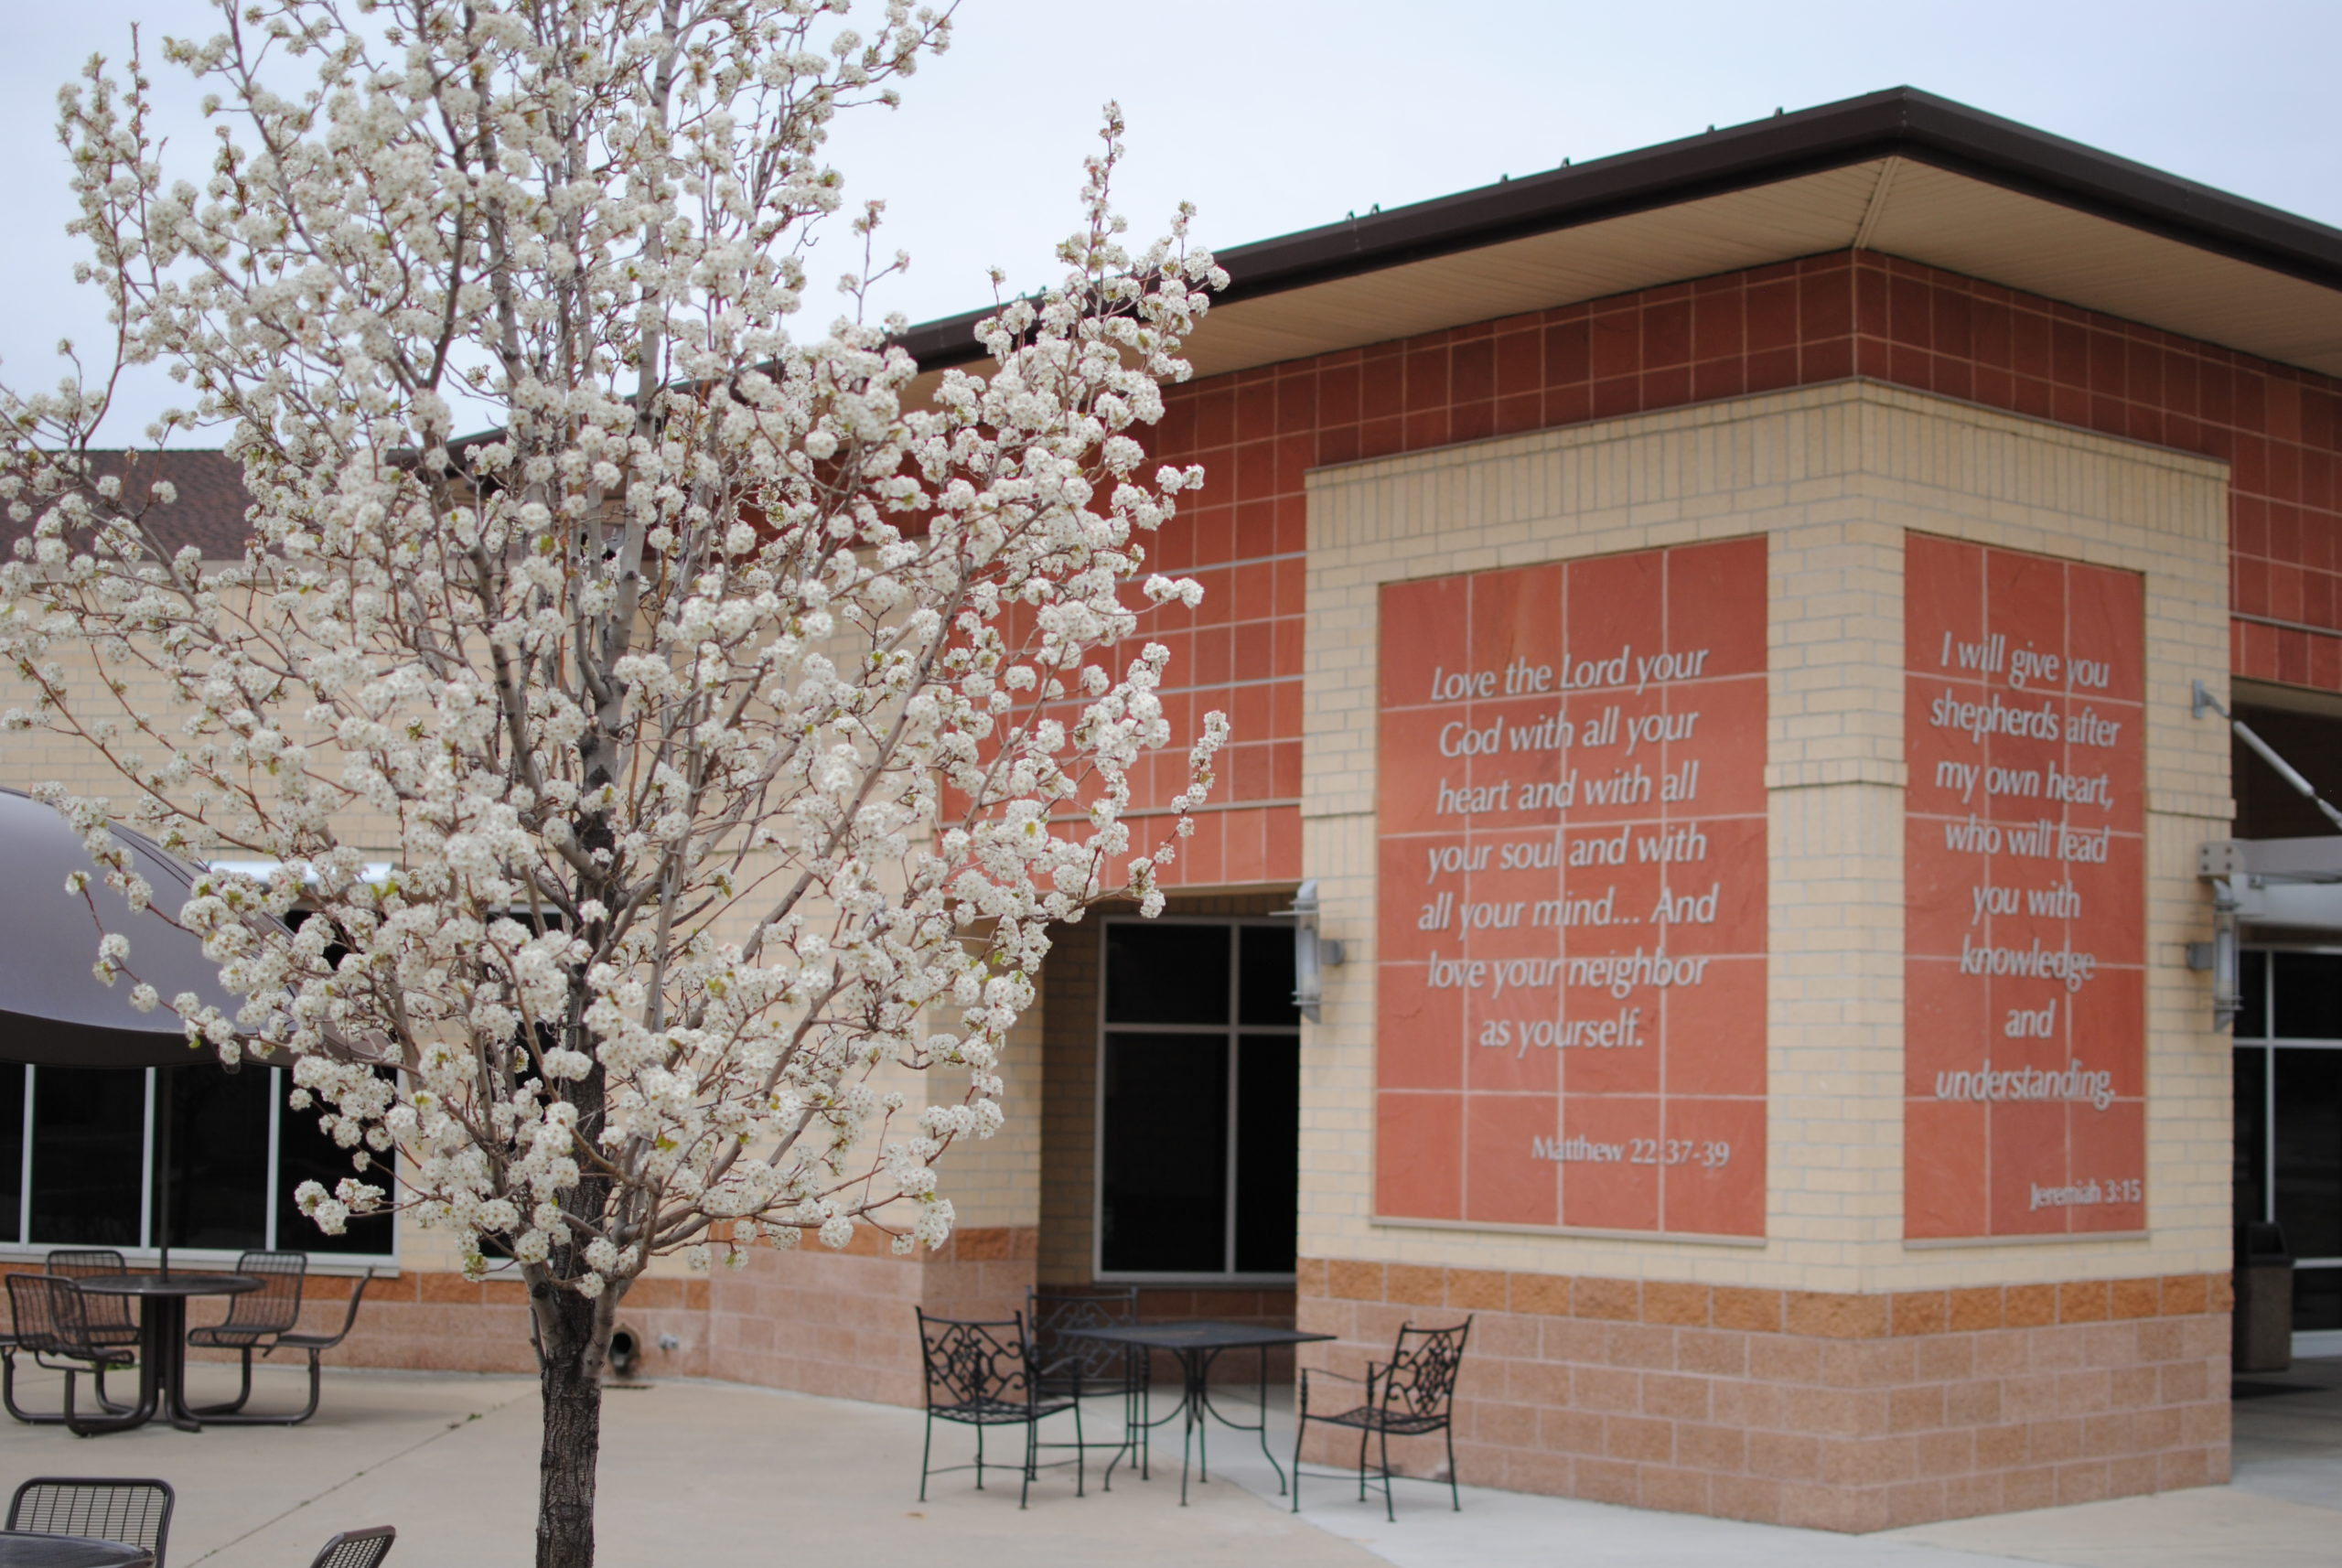 Exterior building on campus with a spring tree in bloom